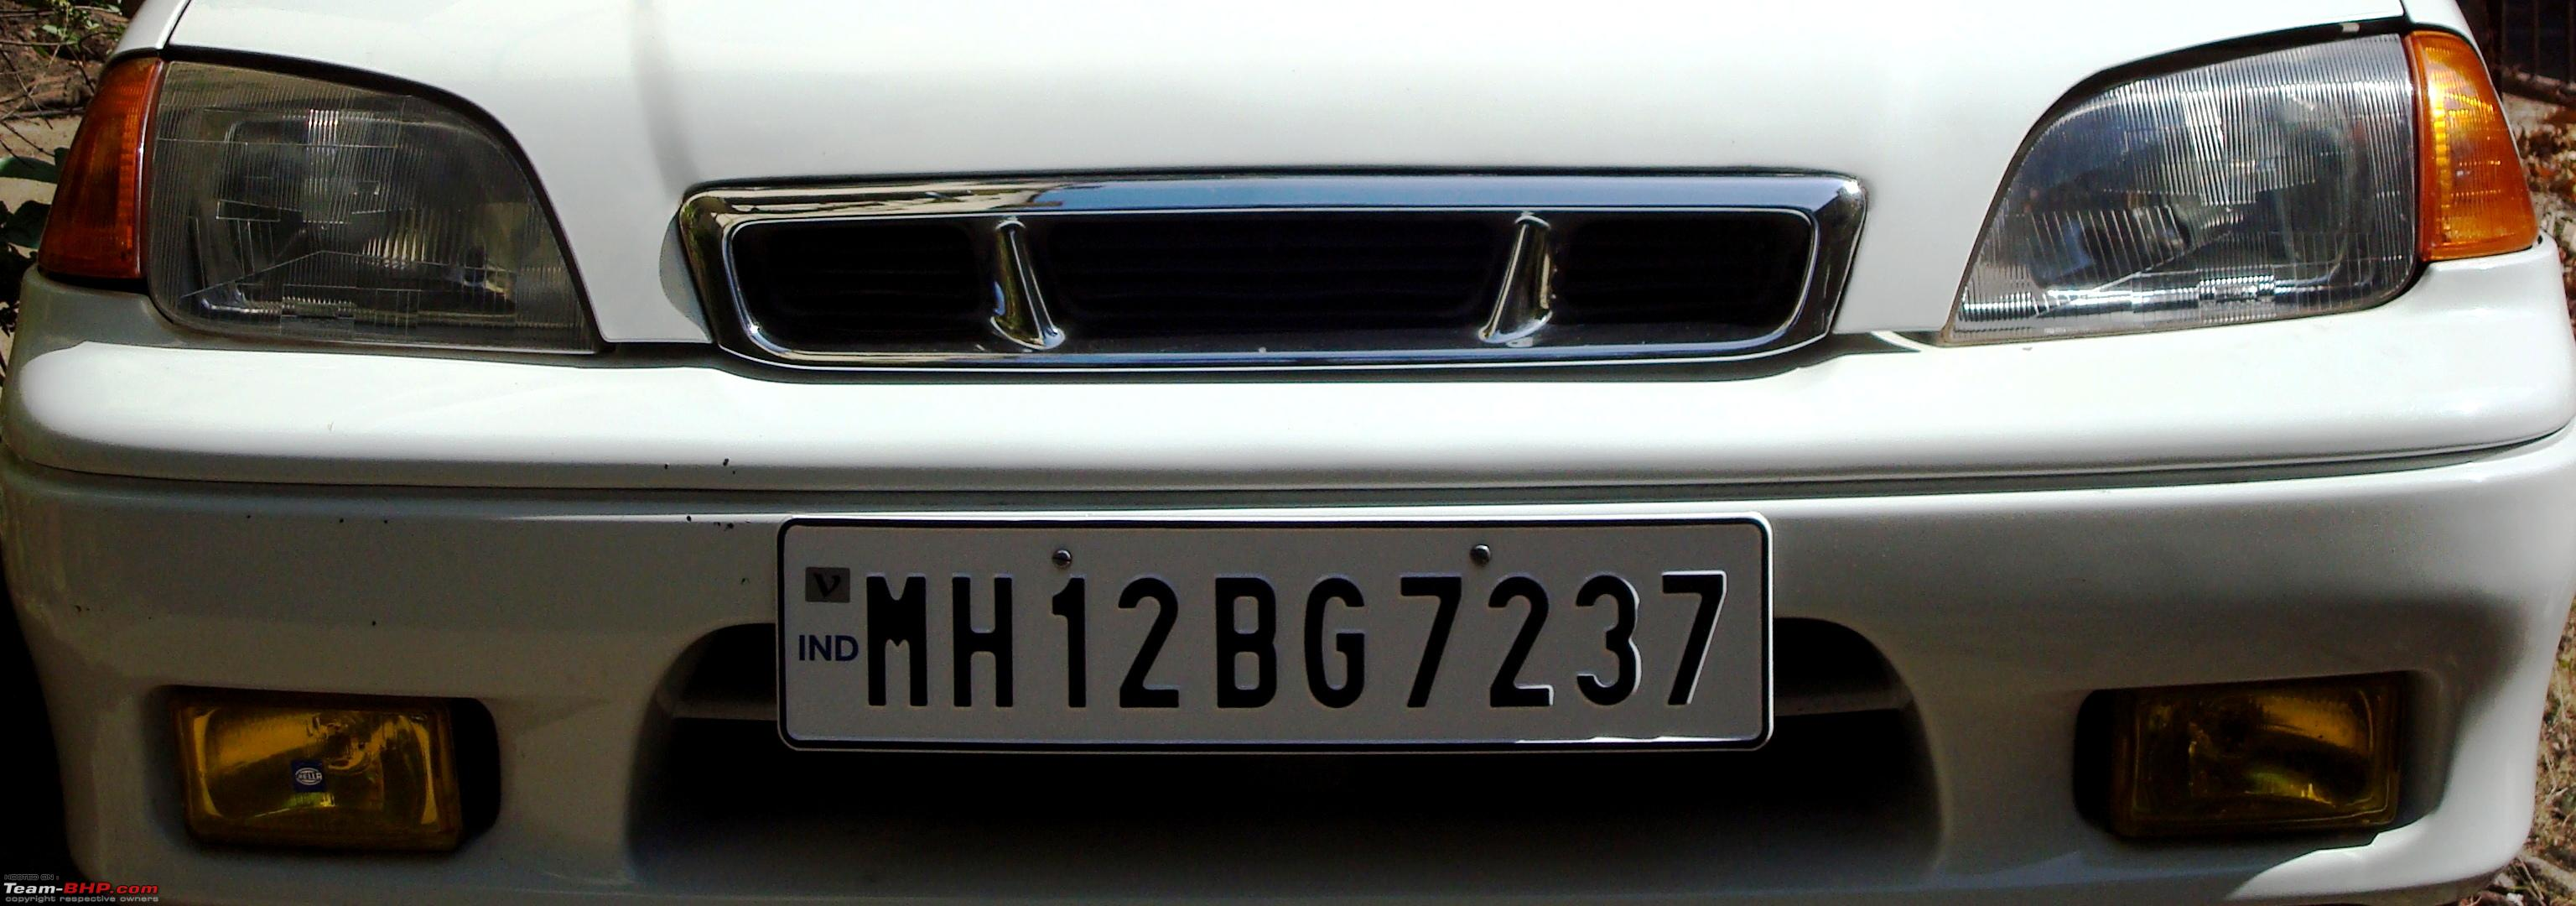 Car colour number plate - High Security Registration Plates Hsrp In India Number Plate Jpg